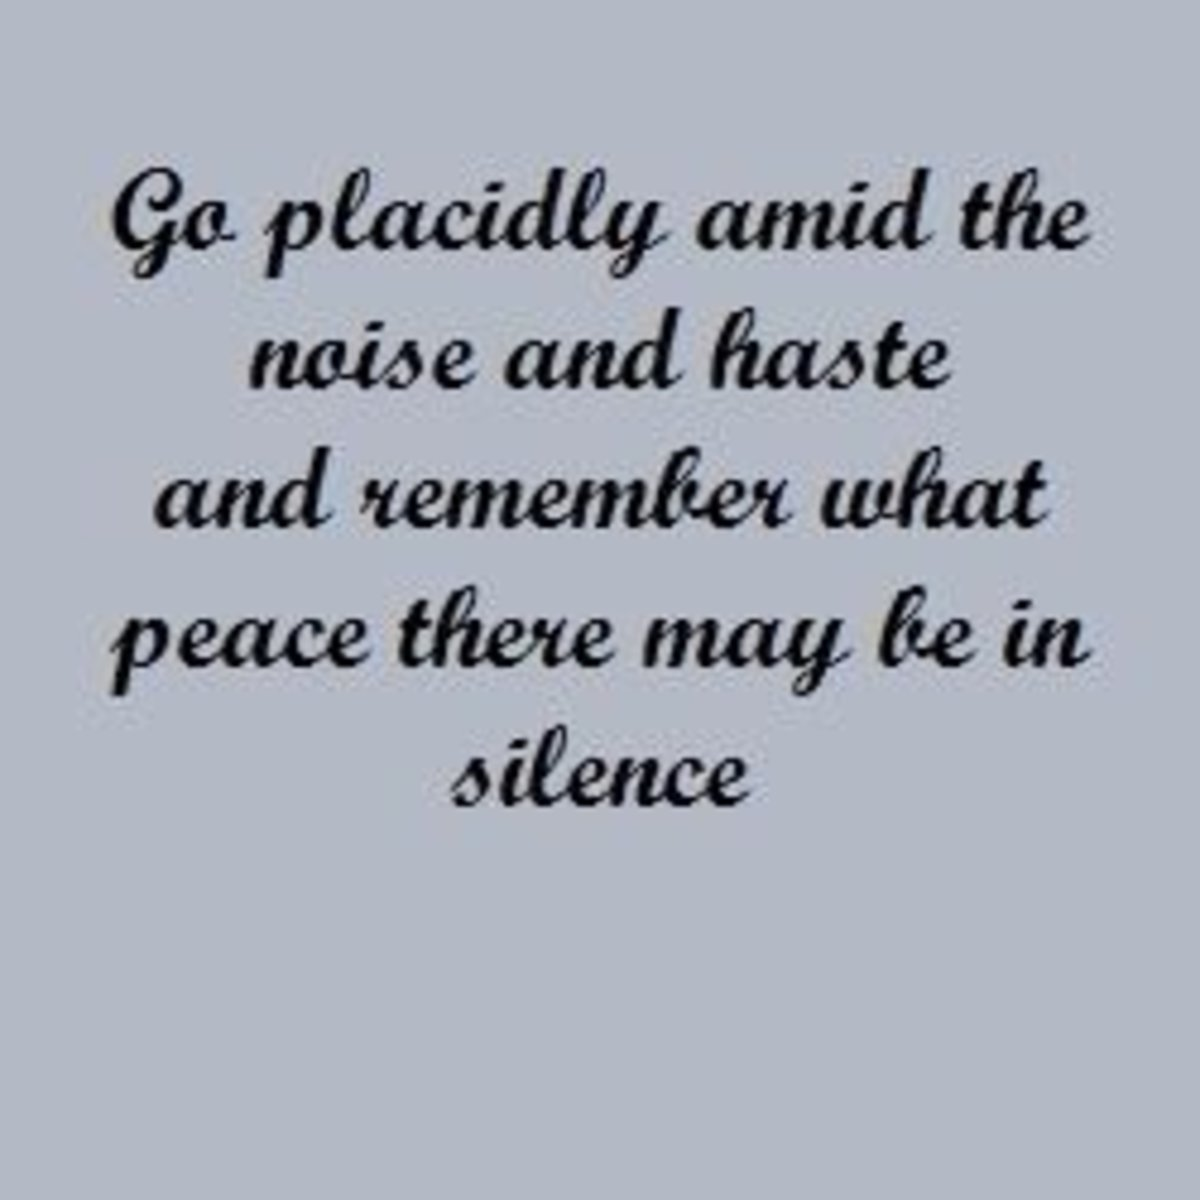 desiderata-go-placidly-amid-the-noise-2